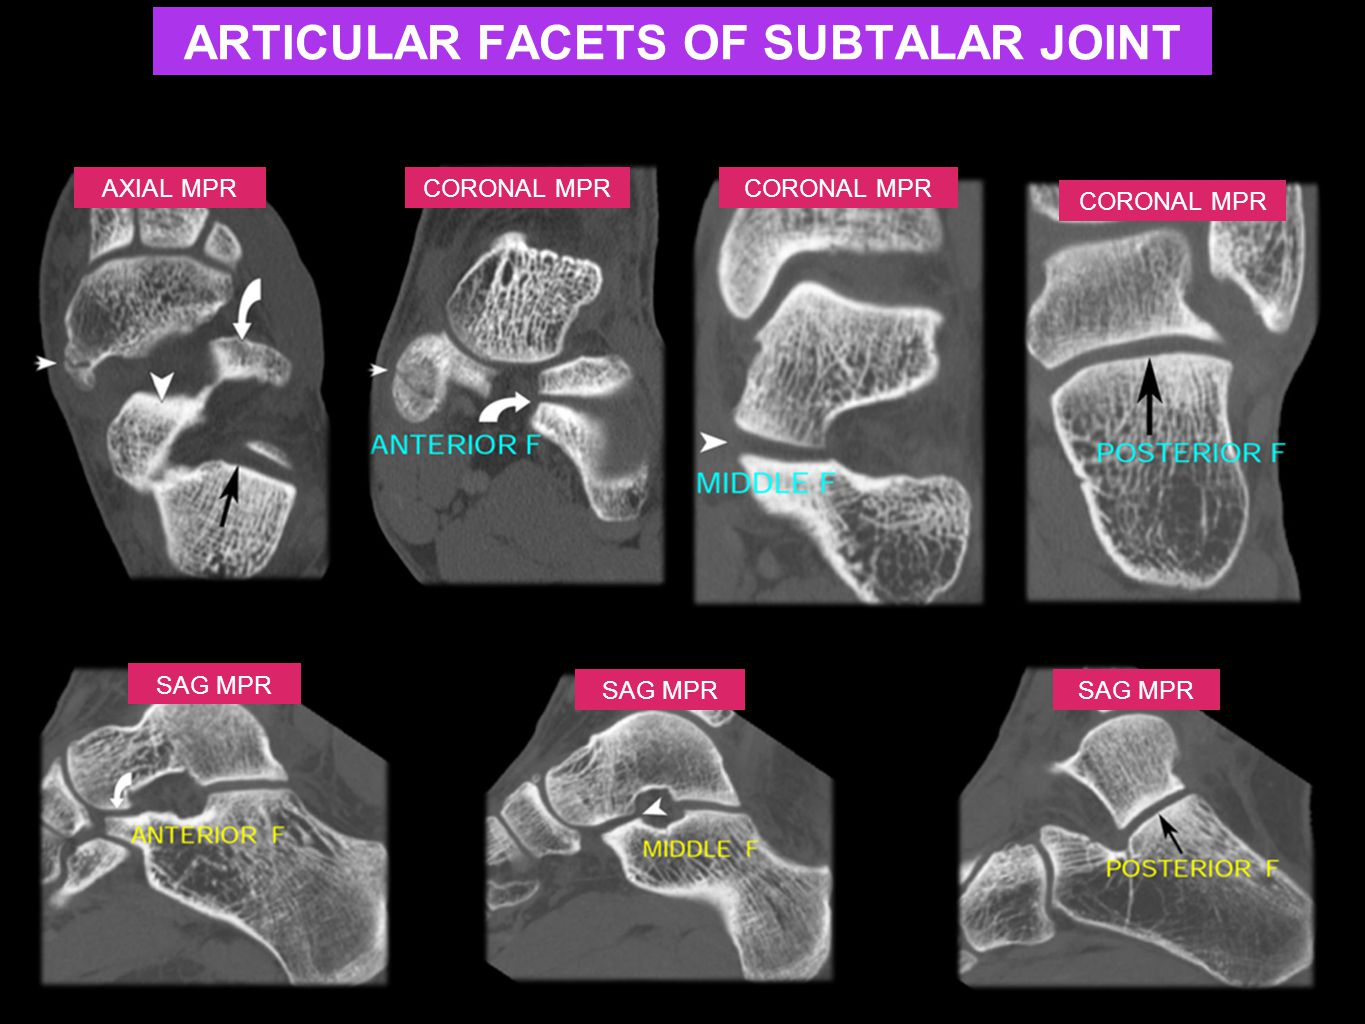 ARTICULAR FACETS OF SUBTALAR JOINT